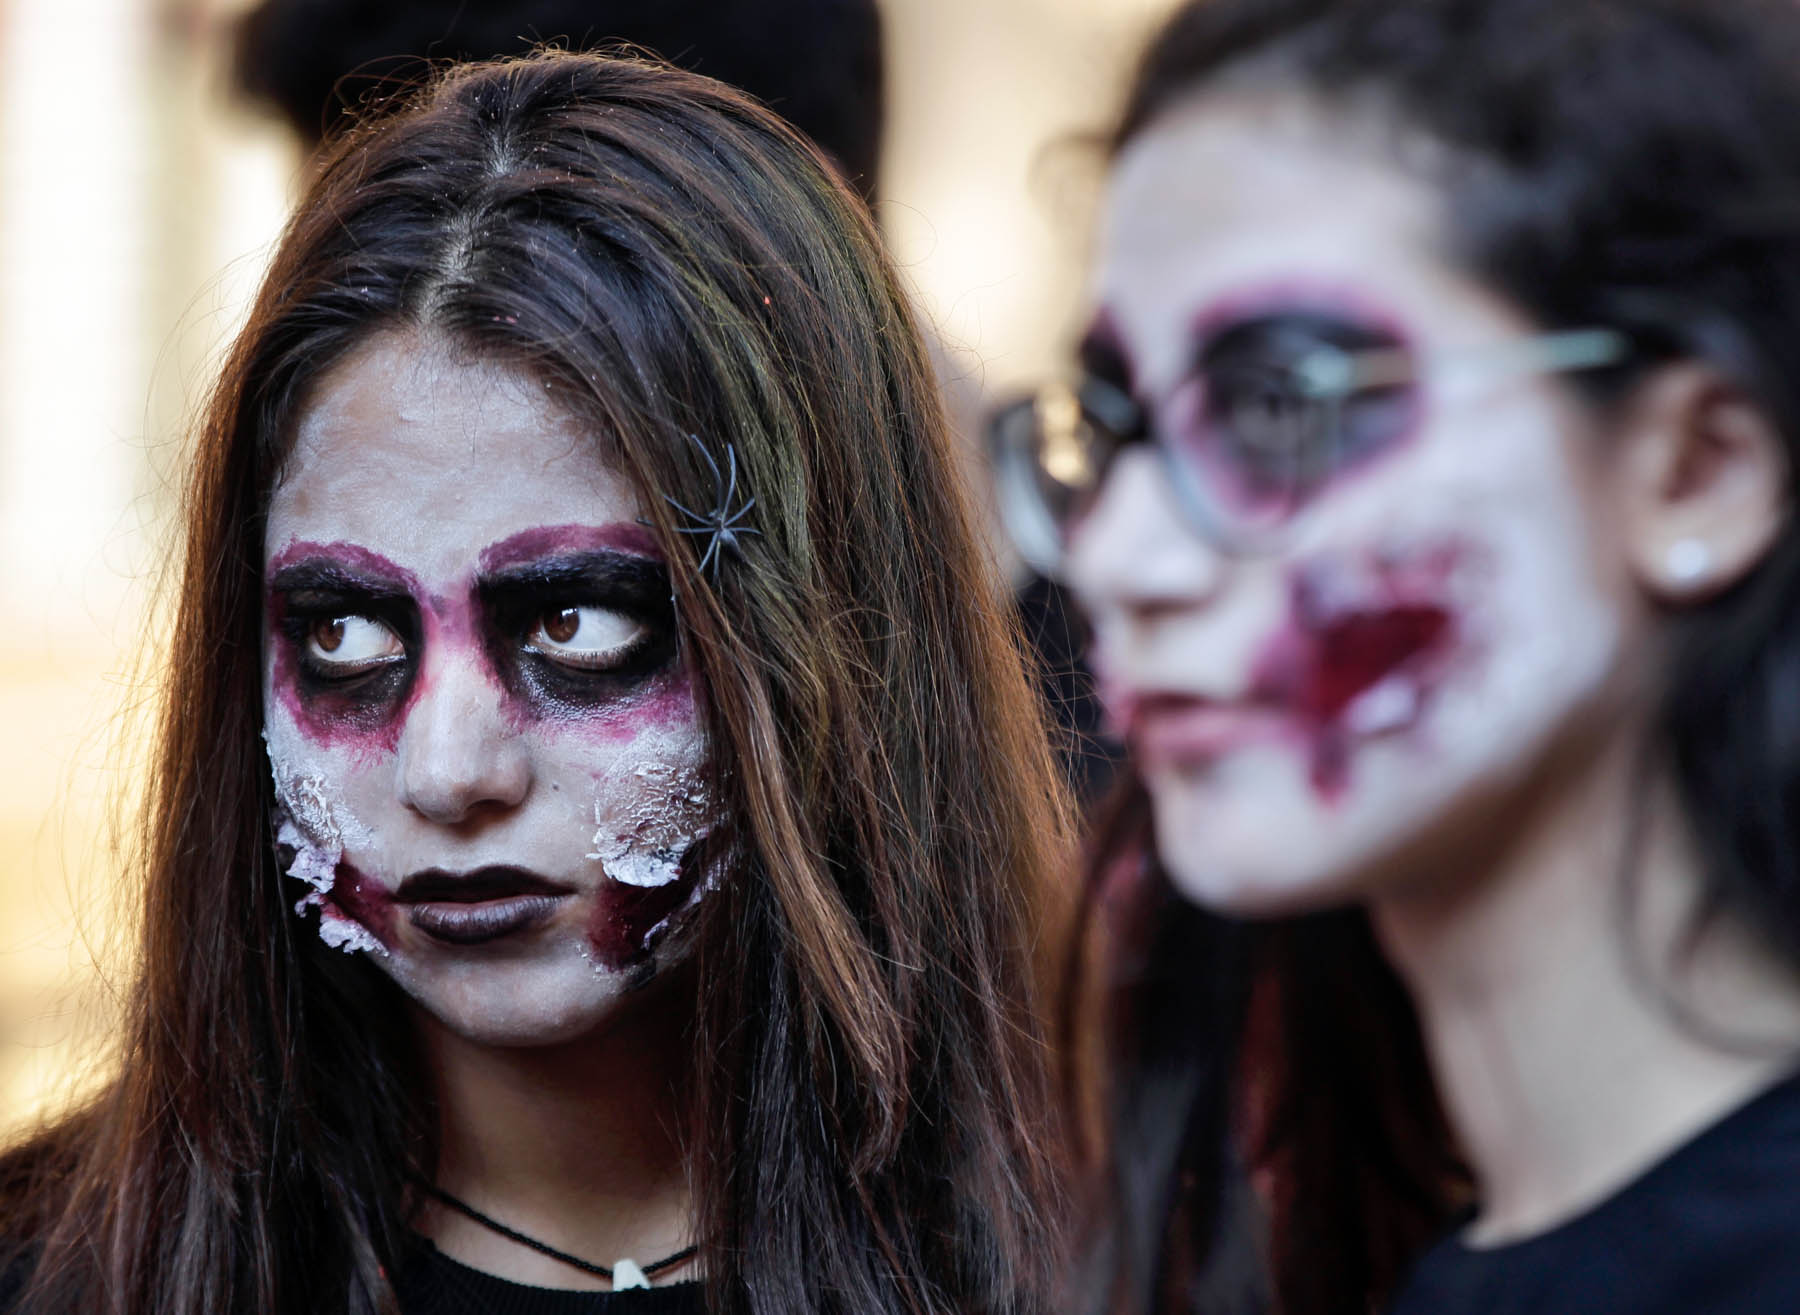 Two women wearing zombie face paint (© AP Images)